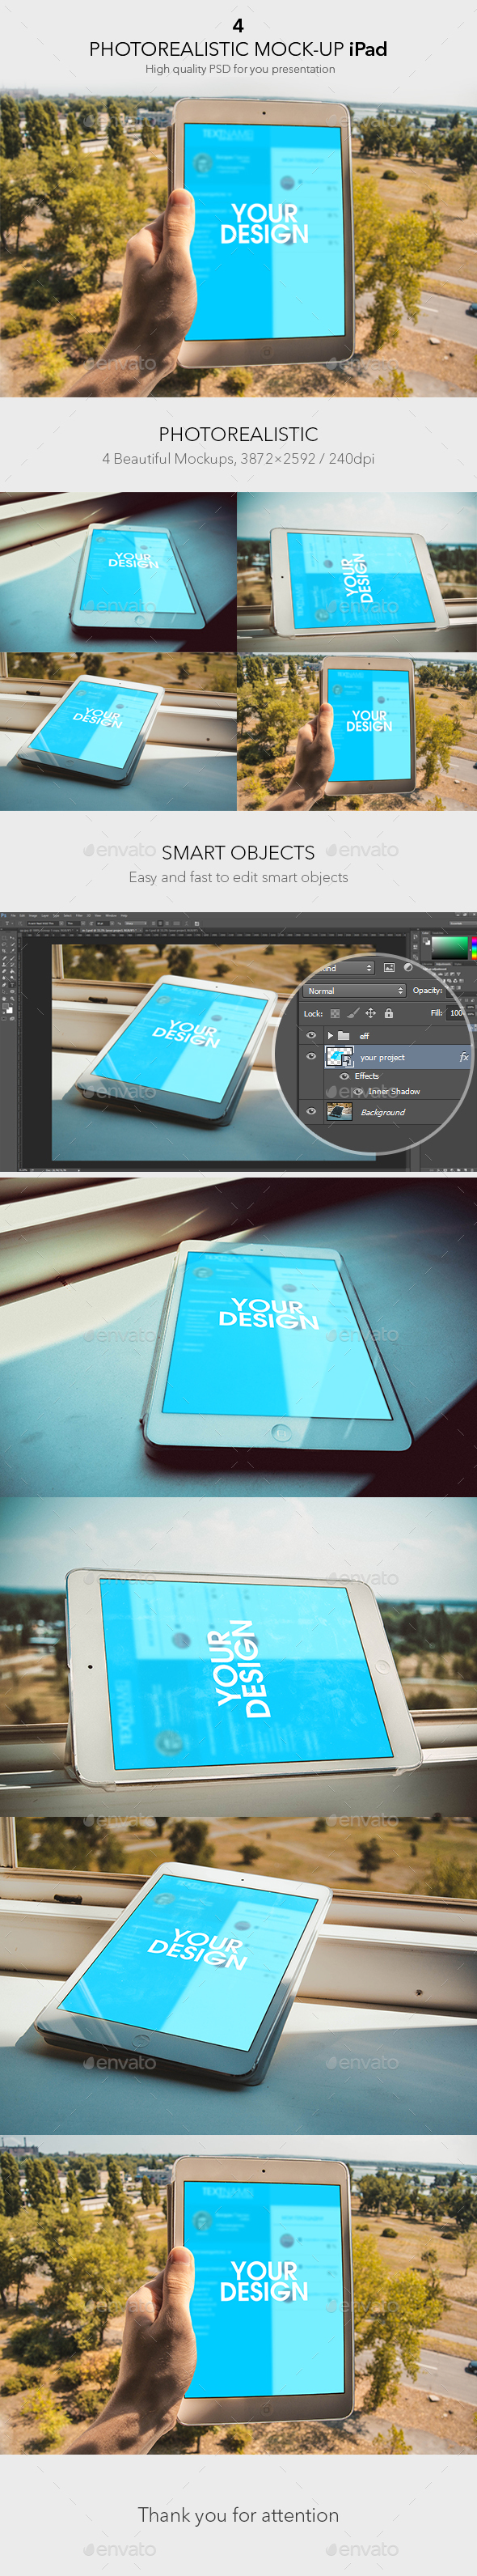 4 Photorealistic Mock-up iPad